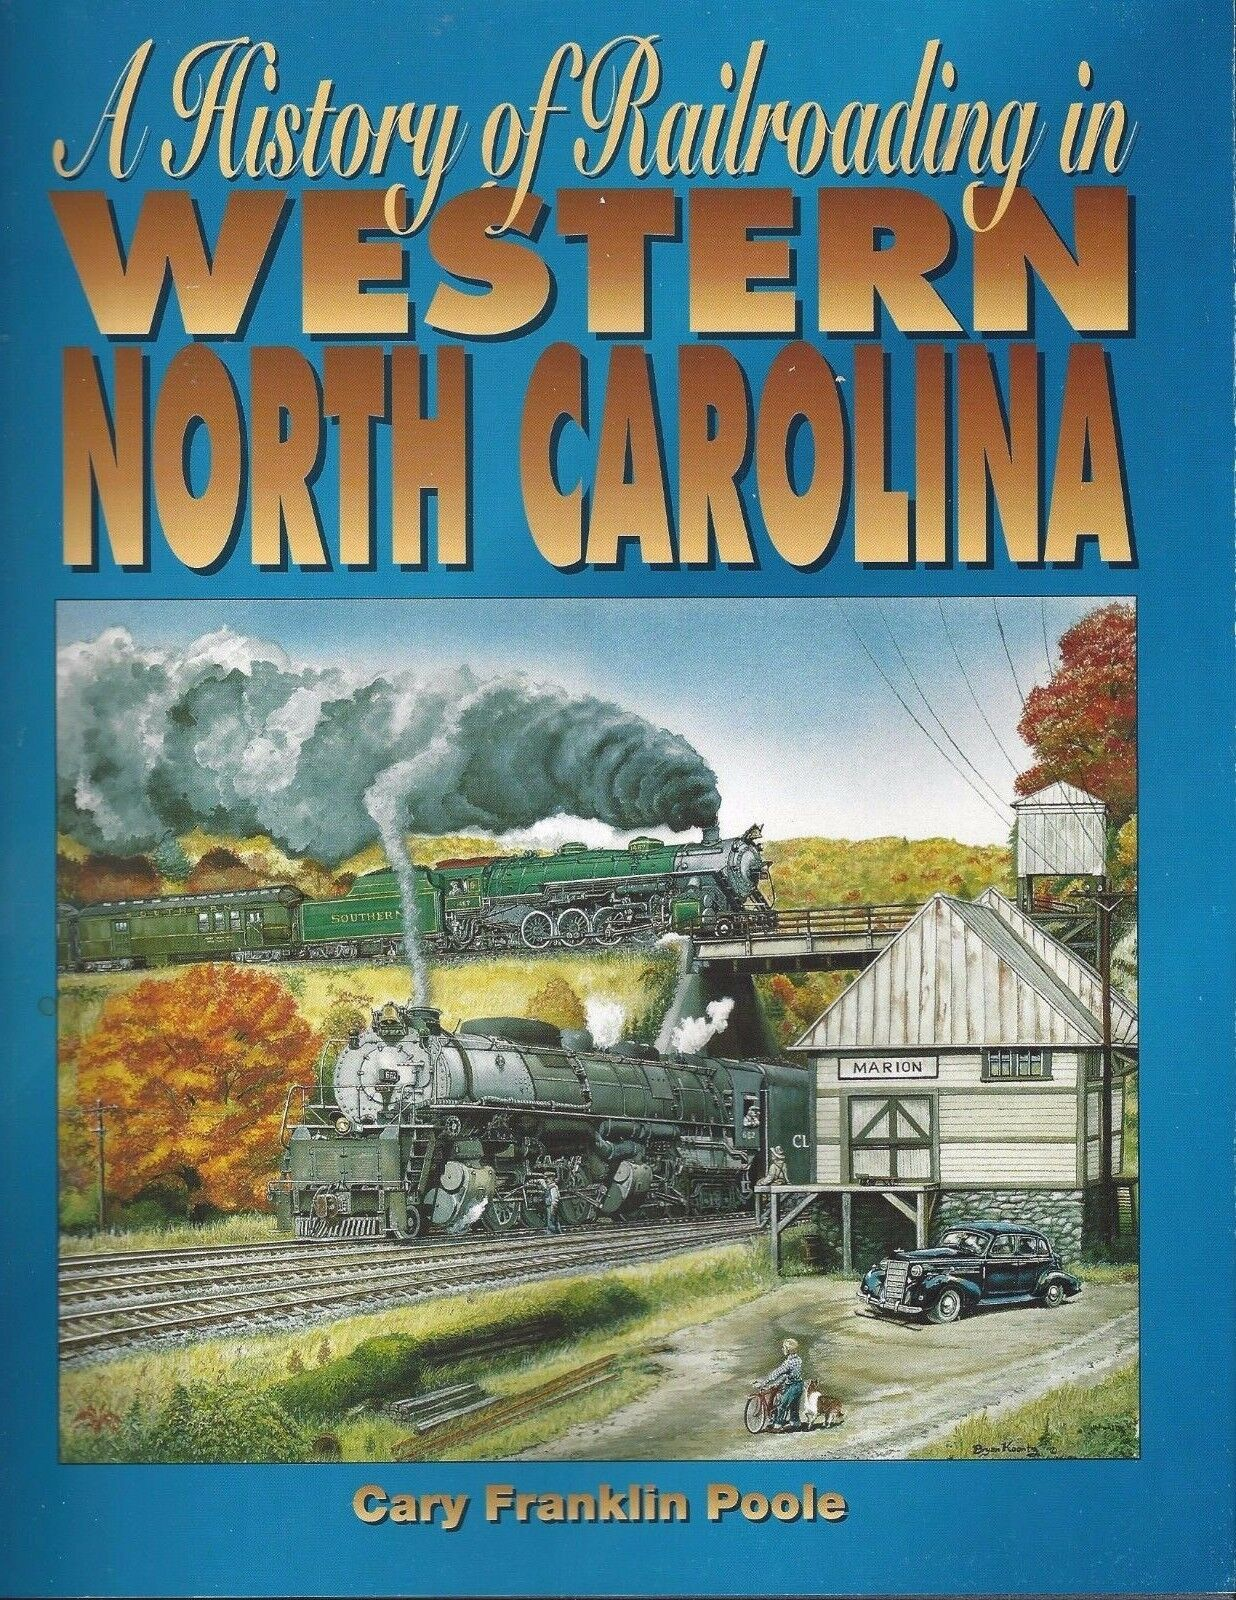 A History of Railroading in WESTERN NORTH CAROLINA: 300+ photos  NEW BOOK